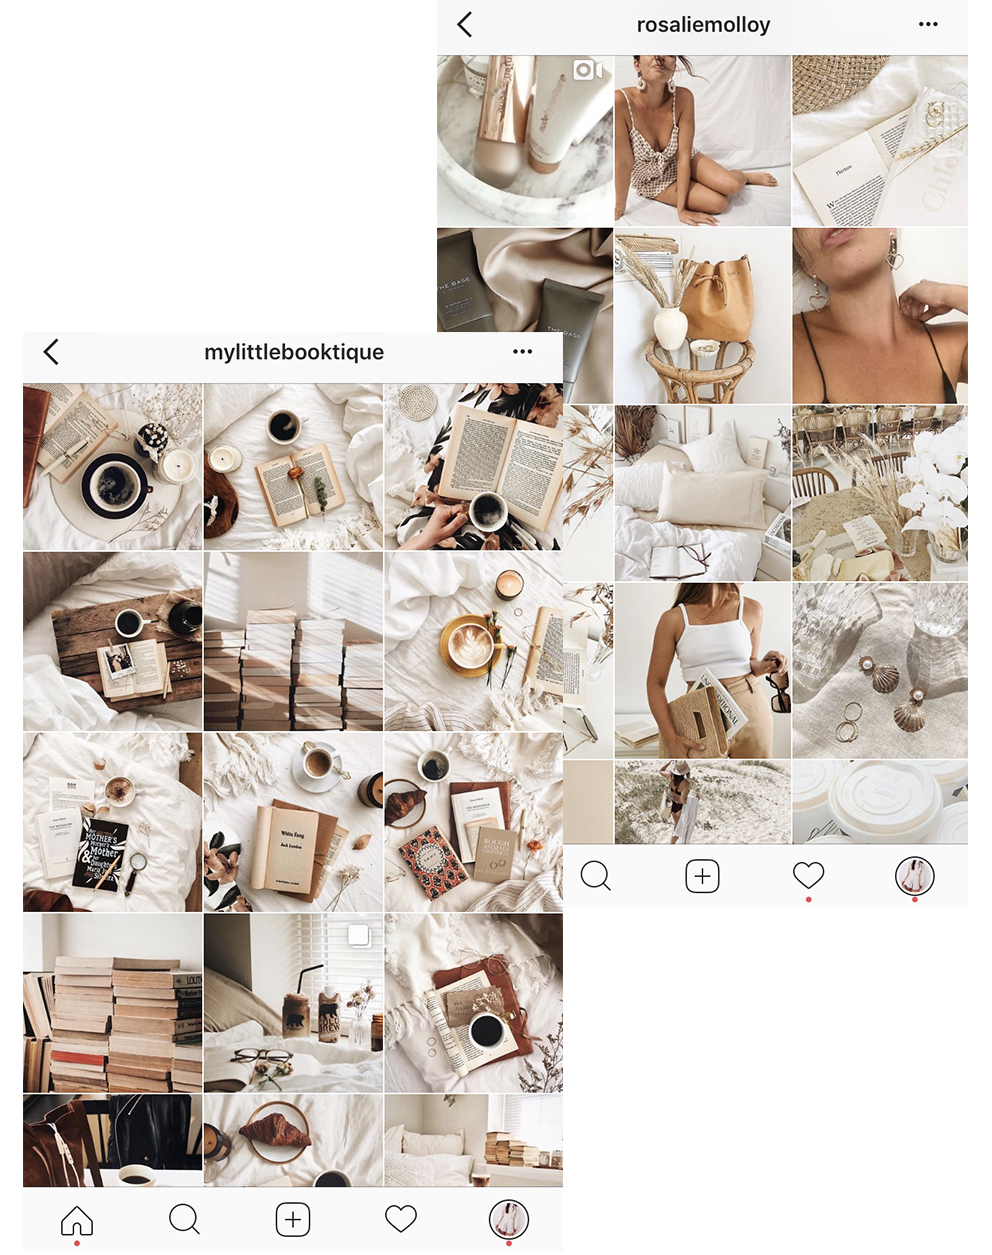 4/ Match your whites - Take a look at the white tones in your photos and compare them in your planning stage. You can create a consistent theme by making sure all the white tones match each other.